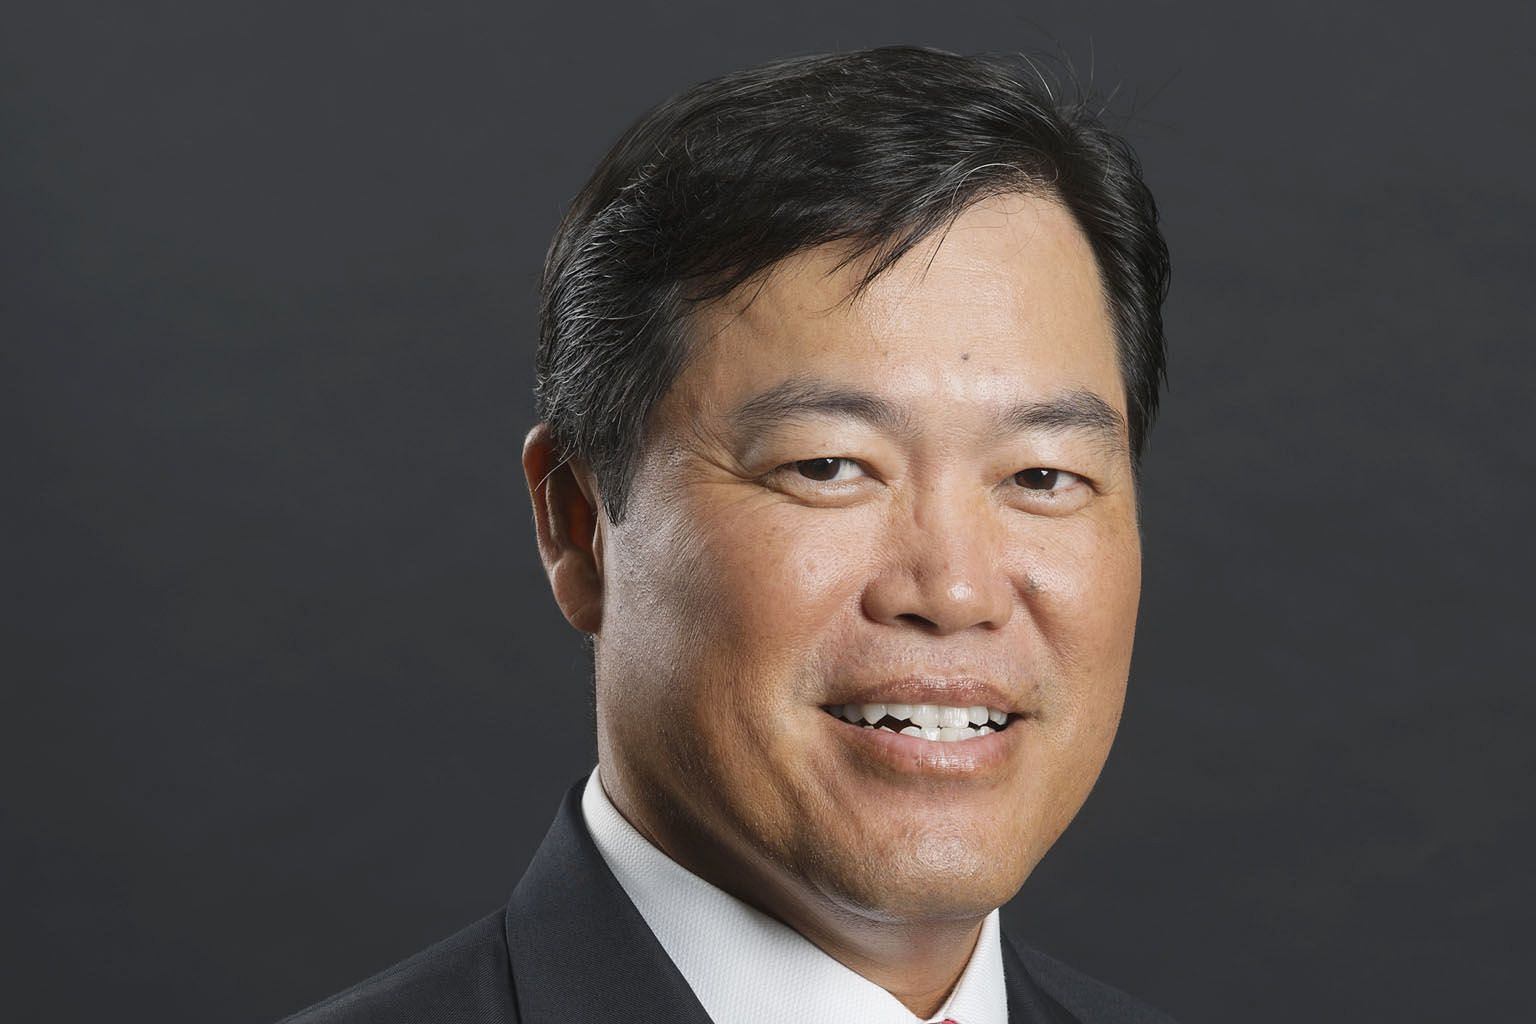 Mr Seah Chin Siong will join the Singapore Institute of Management as president and CEO.